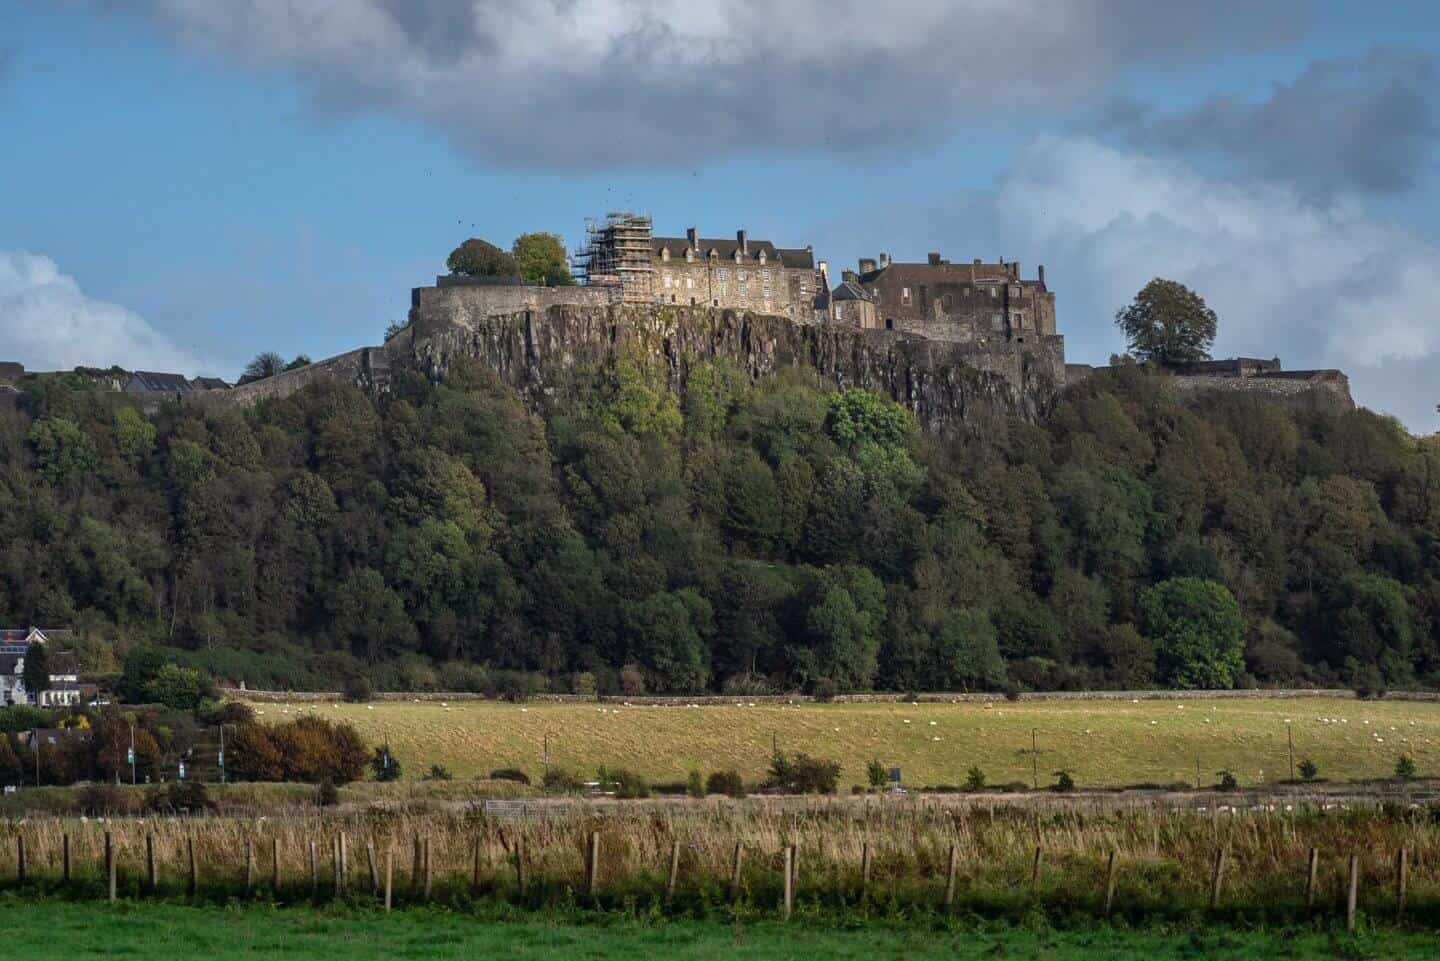 A drive-by view of Stirling Castle.